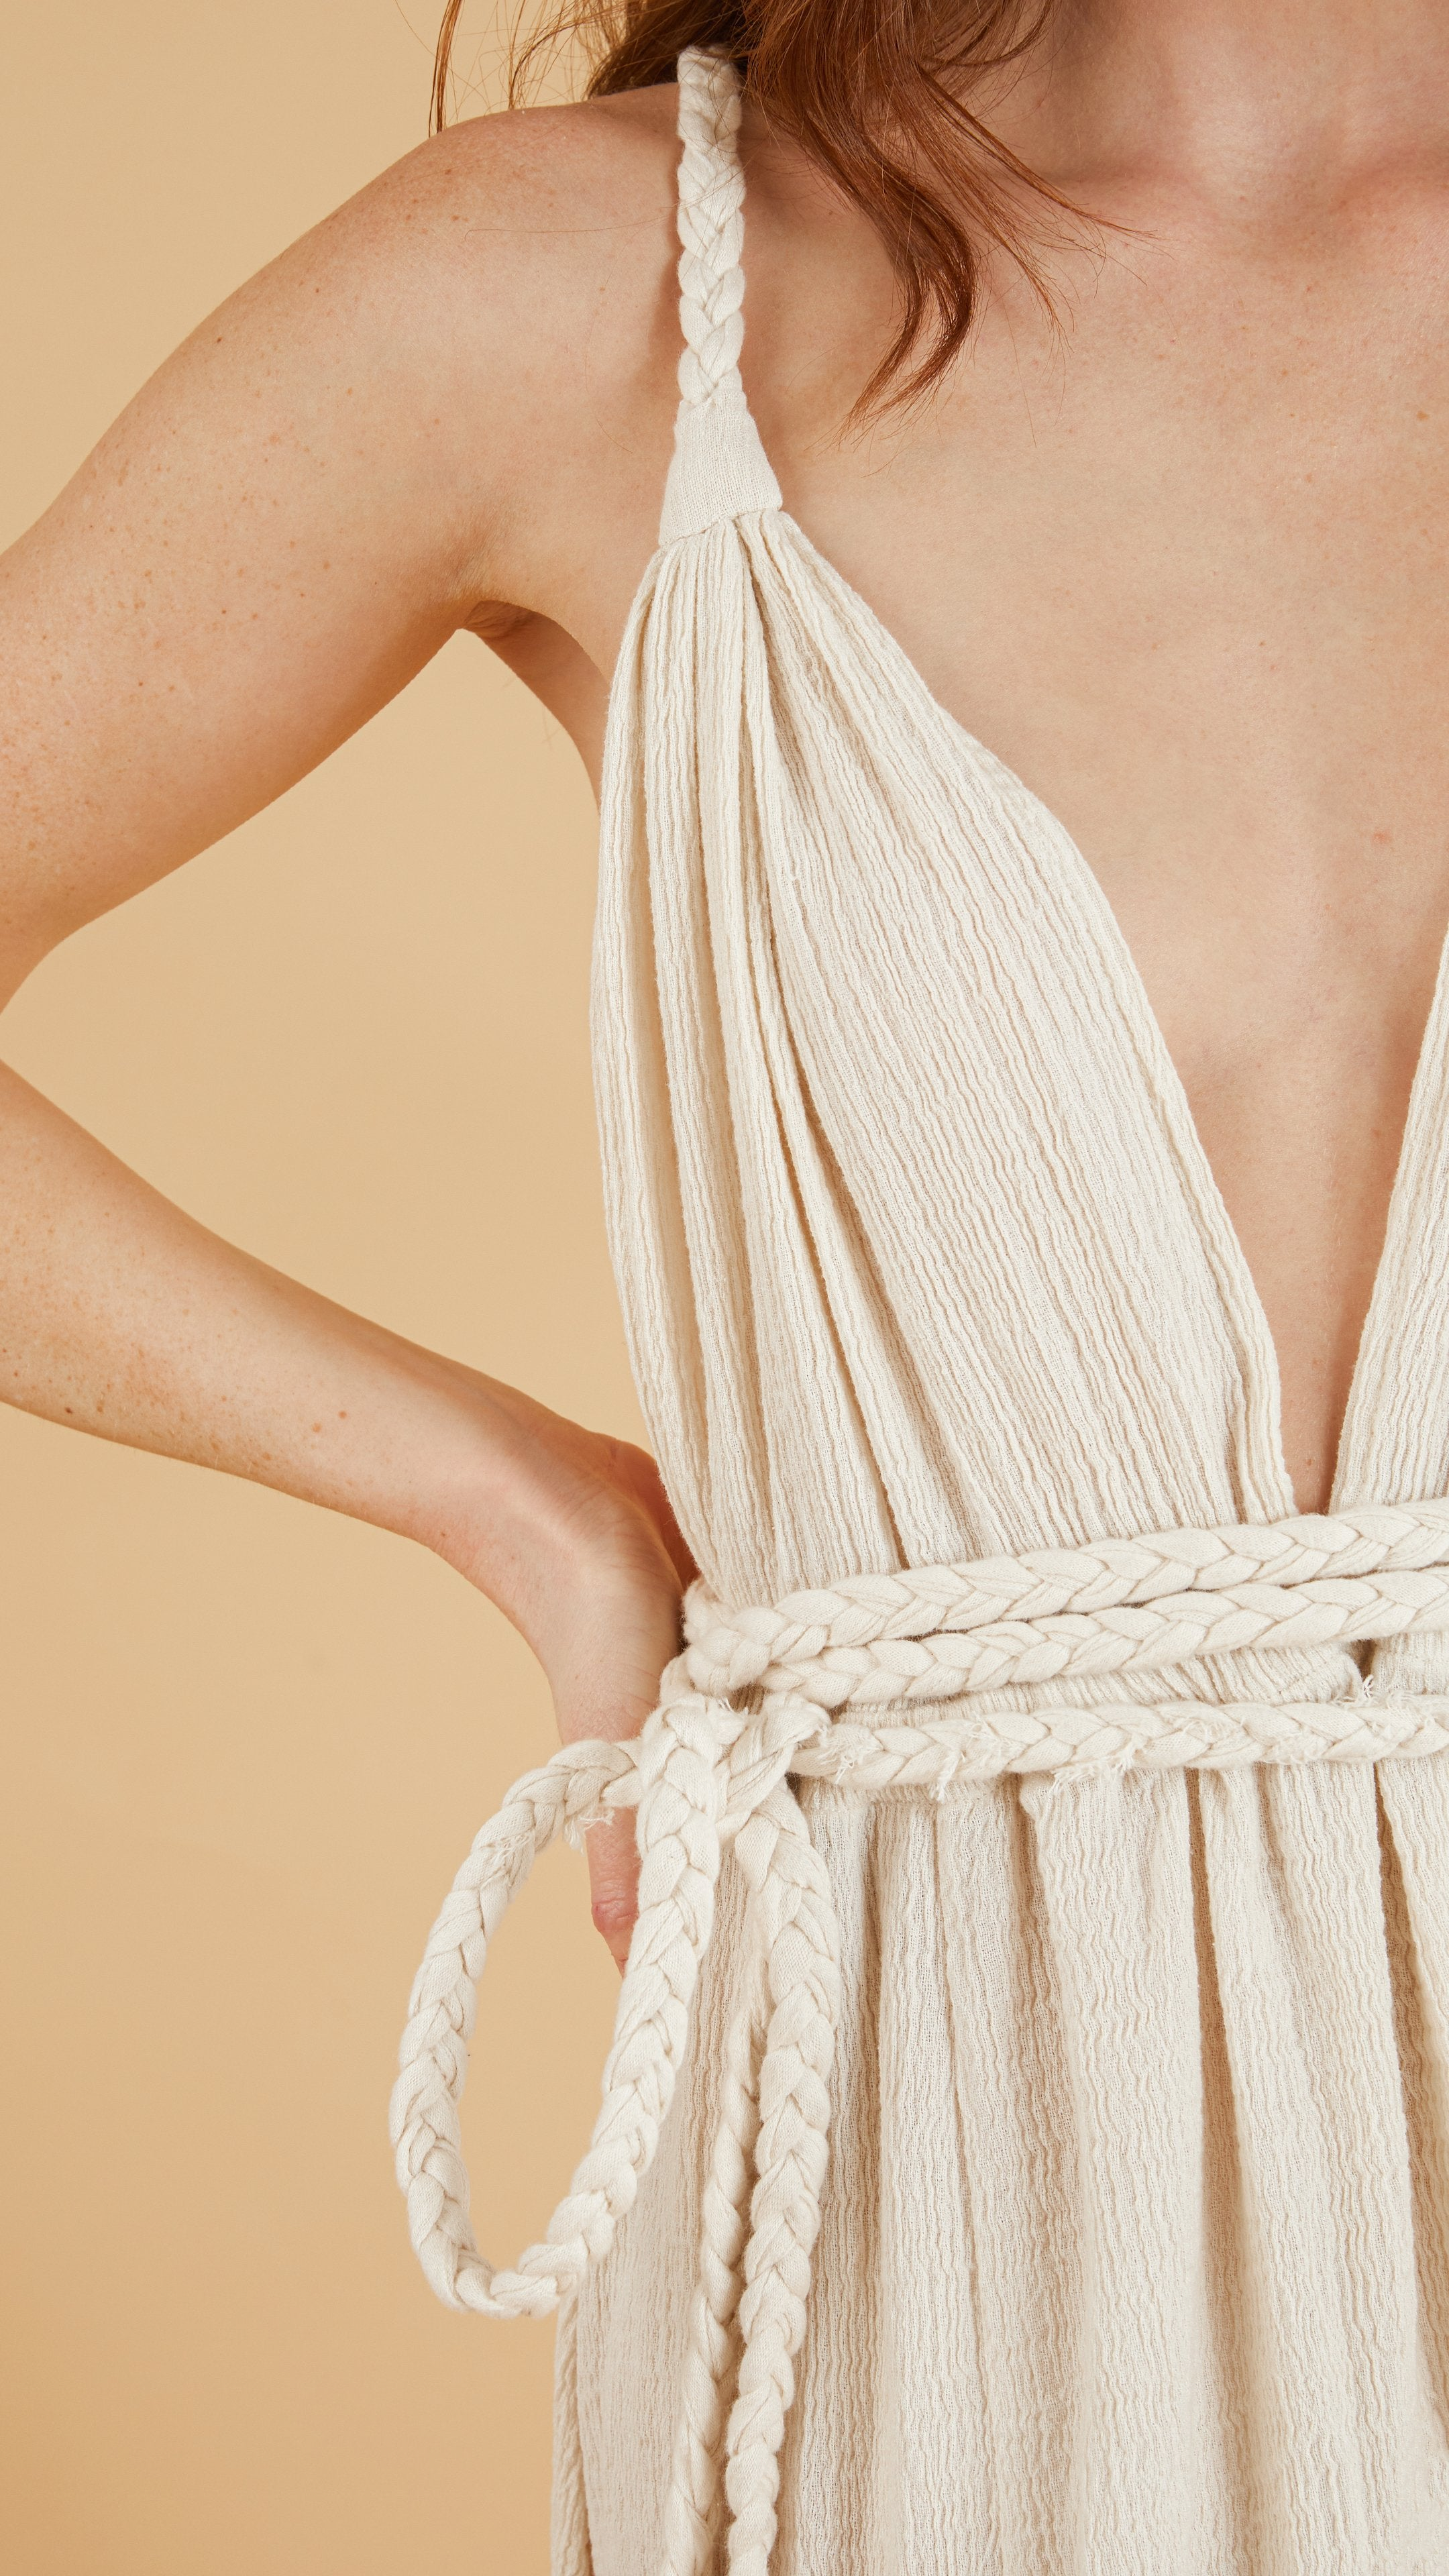 Close up - Muse Braided Strap Dress in Natural